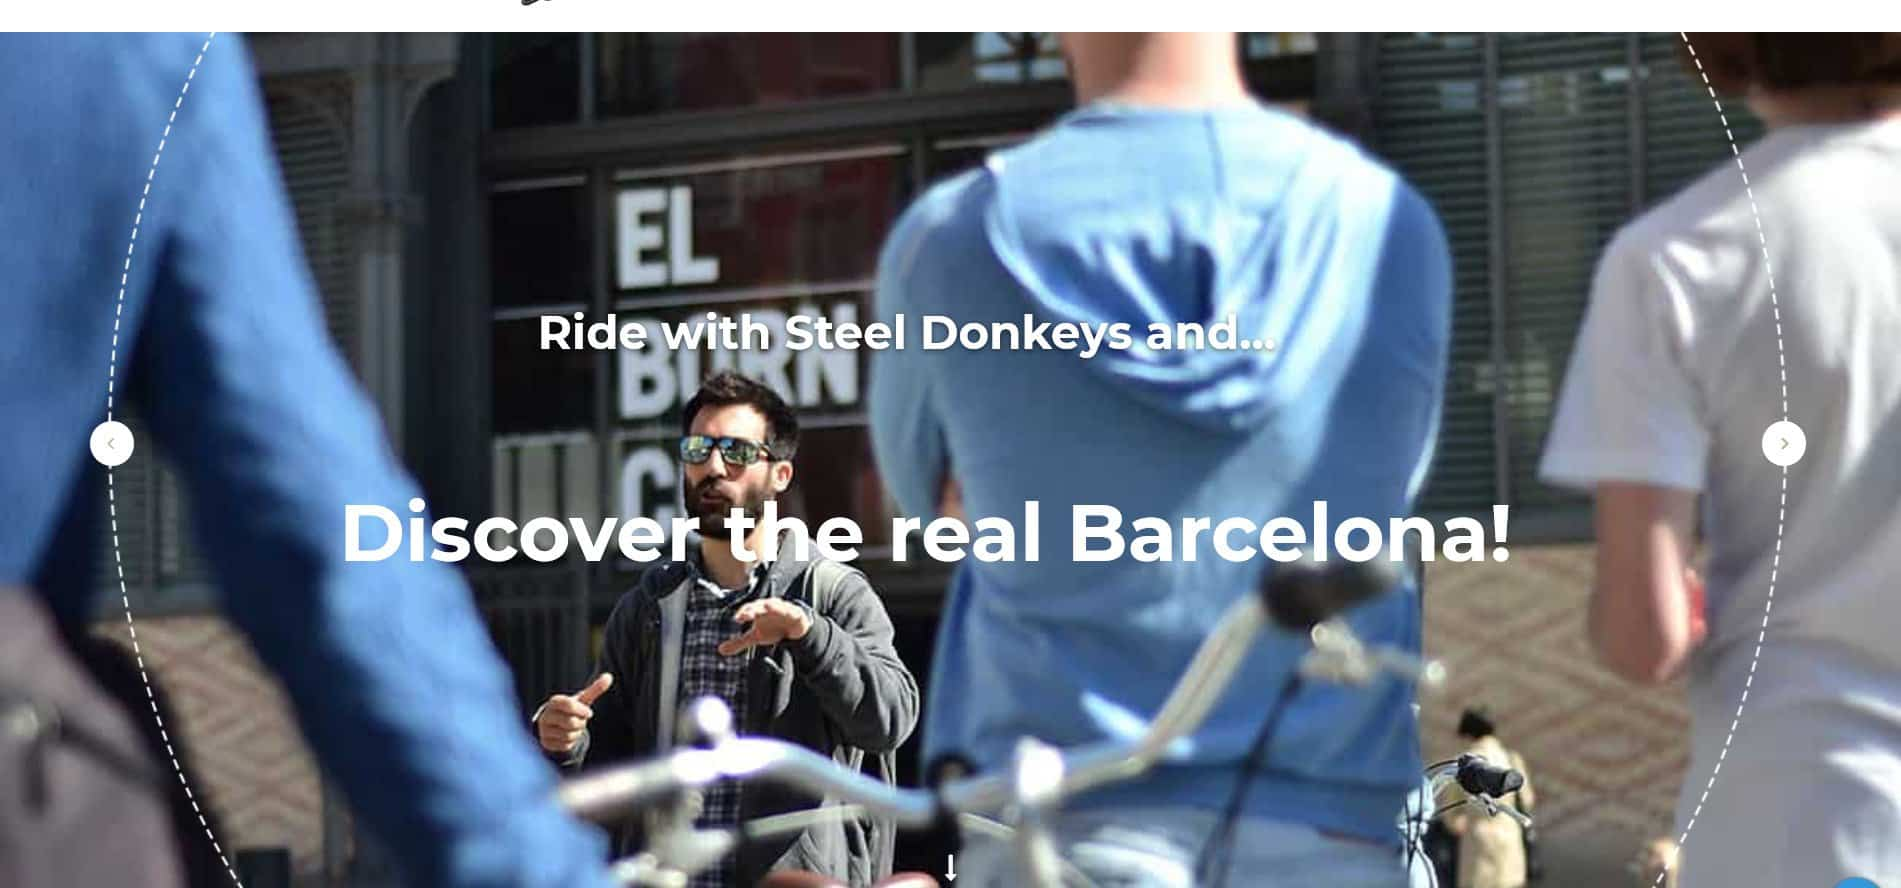 The LEGENDARY Steel Donkey Bike Tour Barcelona no 1 ride